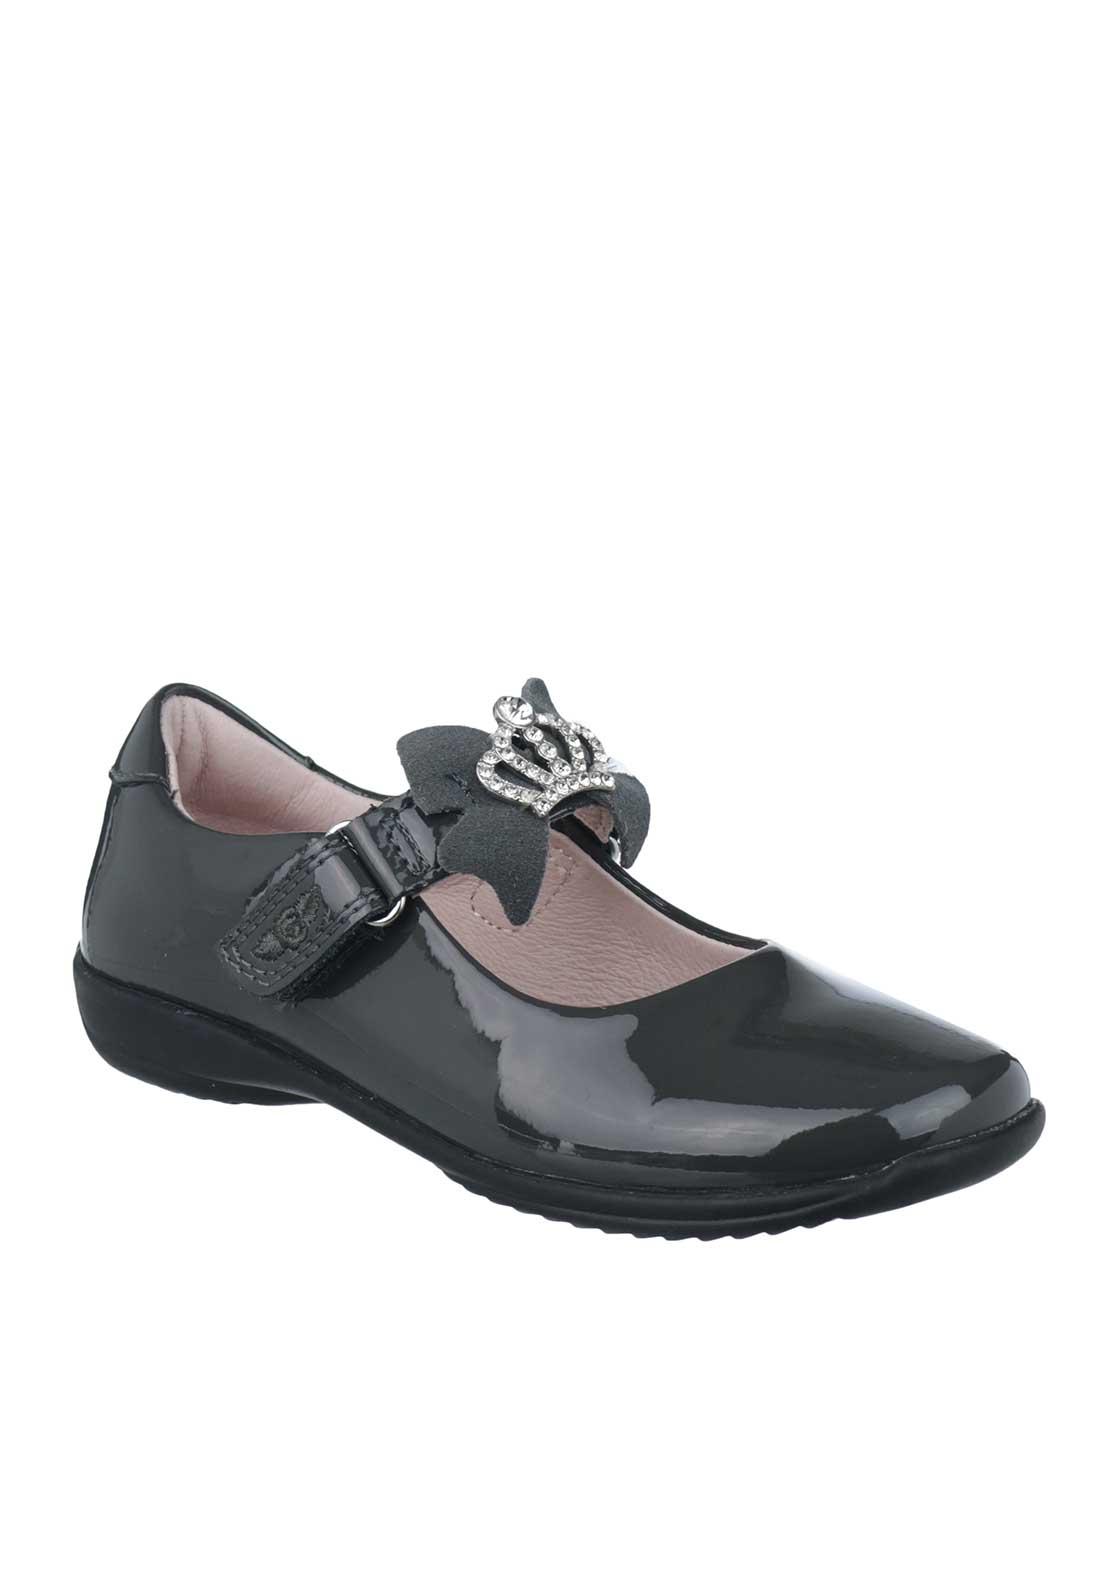 Lelli Kelly Girls Patent Leather Interchangeable Strap School Shoes, Grey